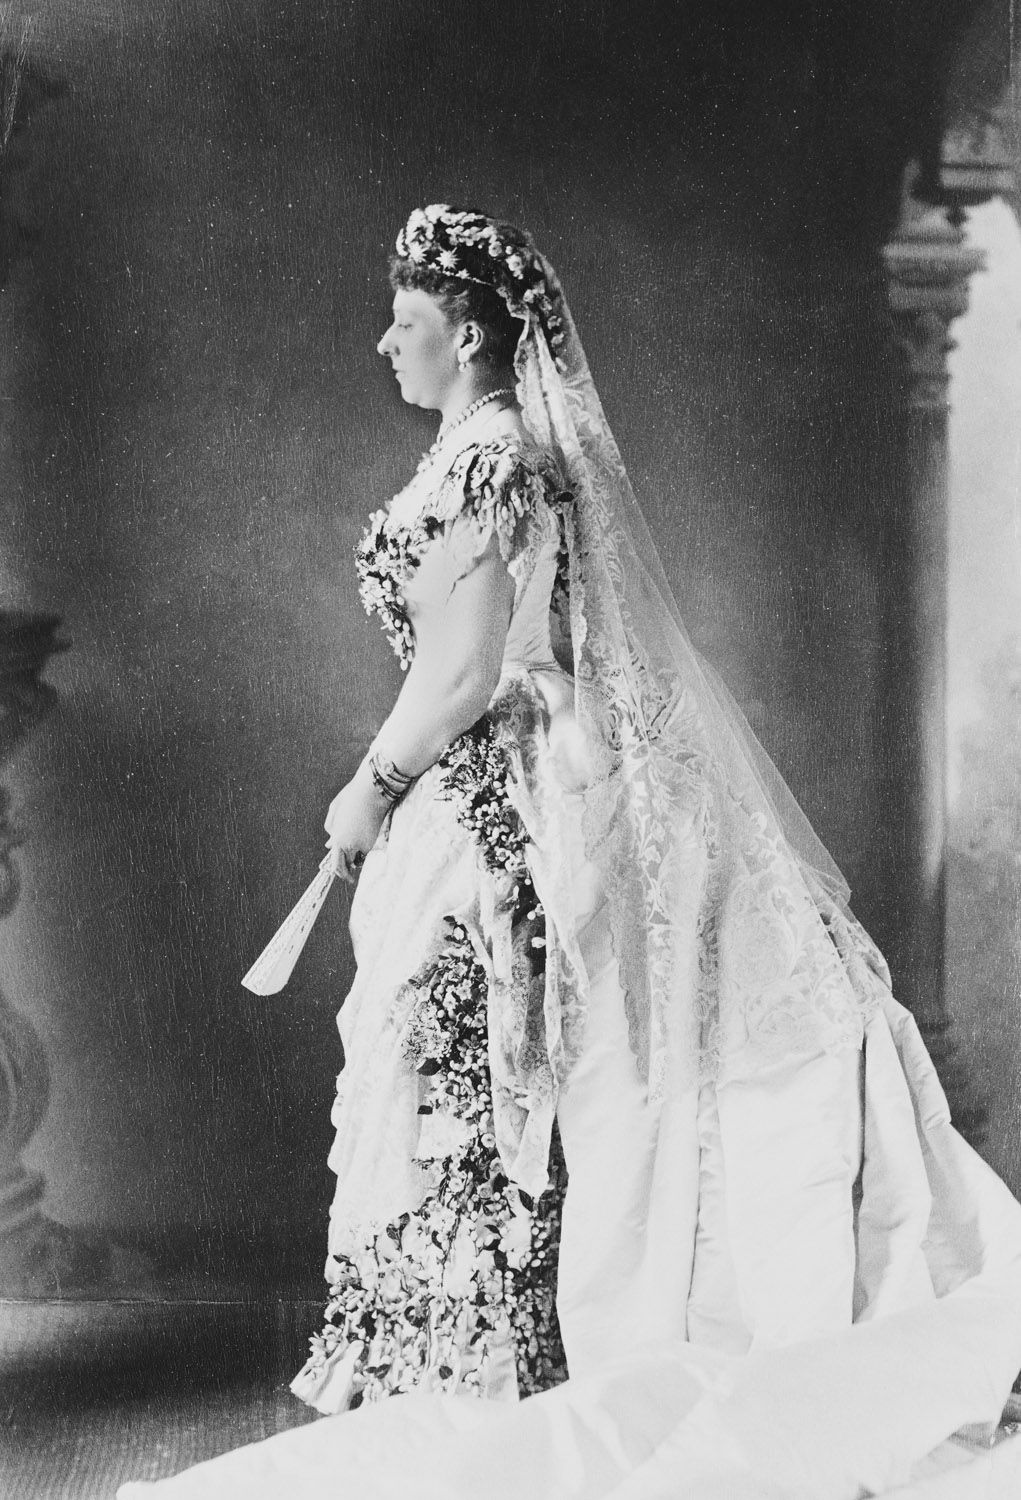 Princess Beatrice (18571944) in her wedding dress, 23rd